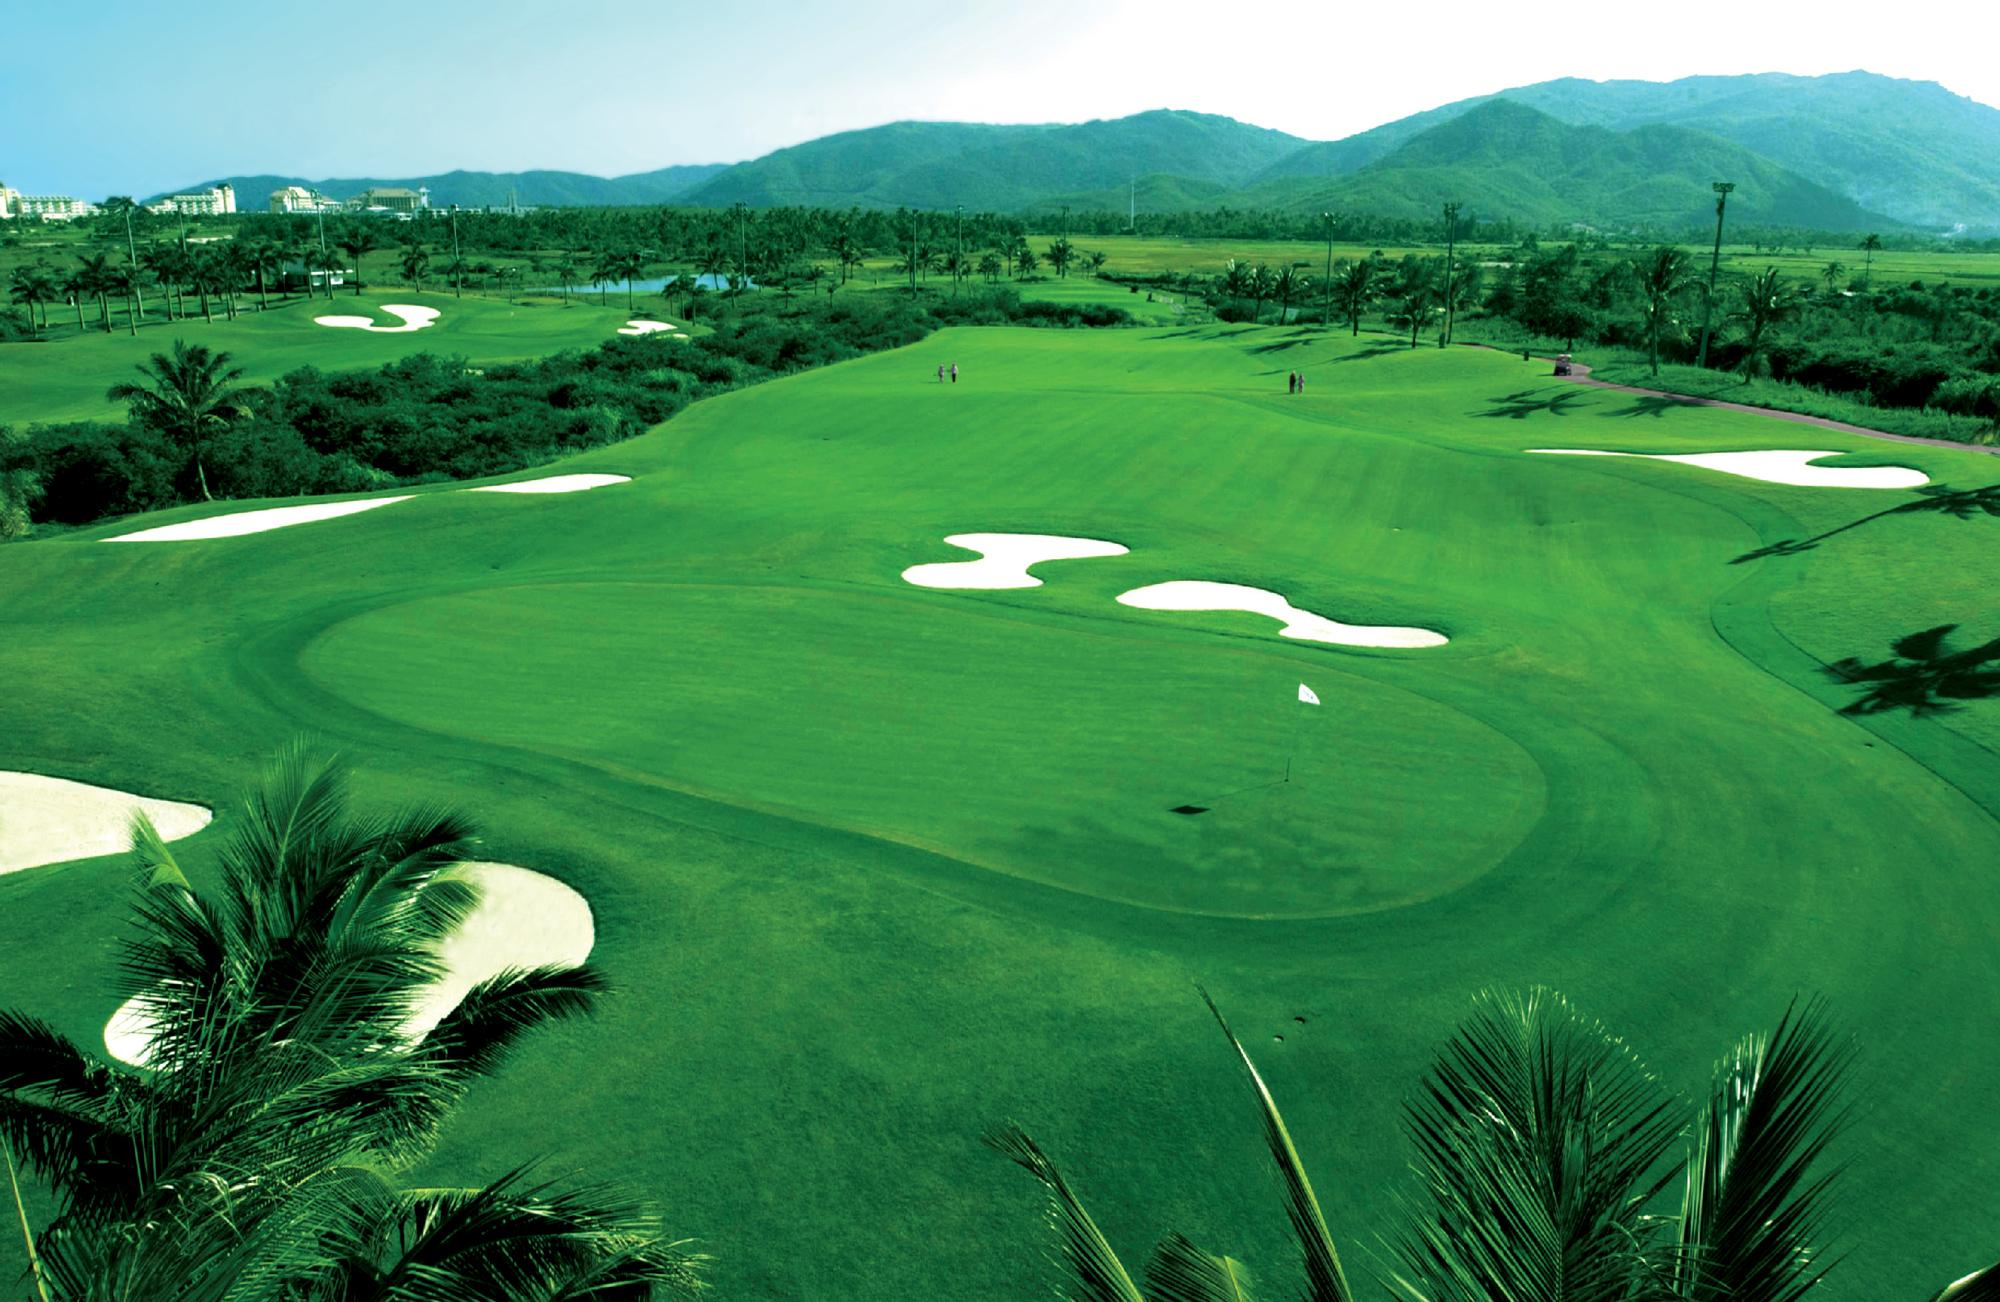 Yalong Bay Golf Club's impressive golf course in astounding China.